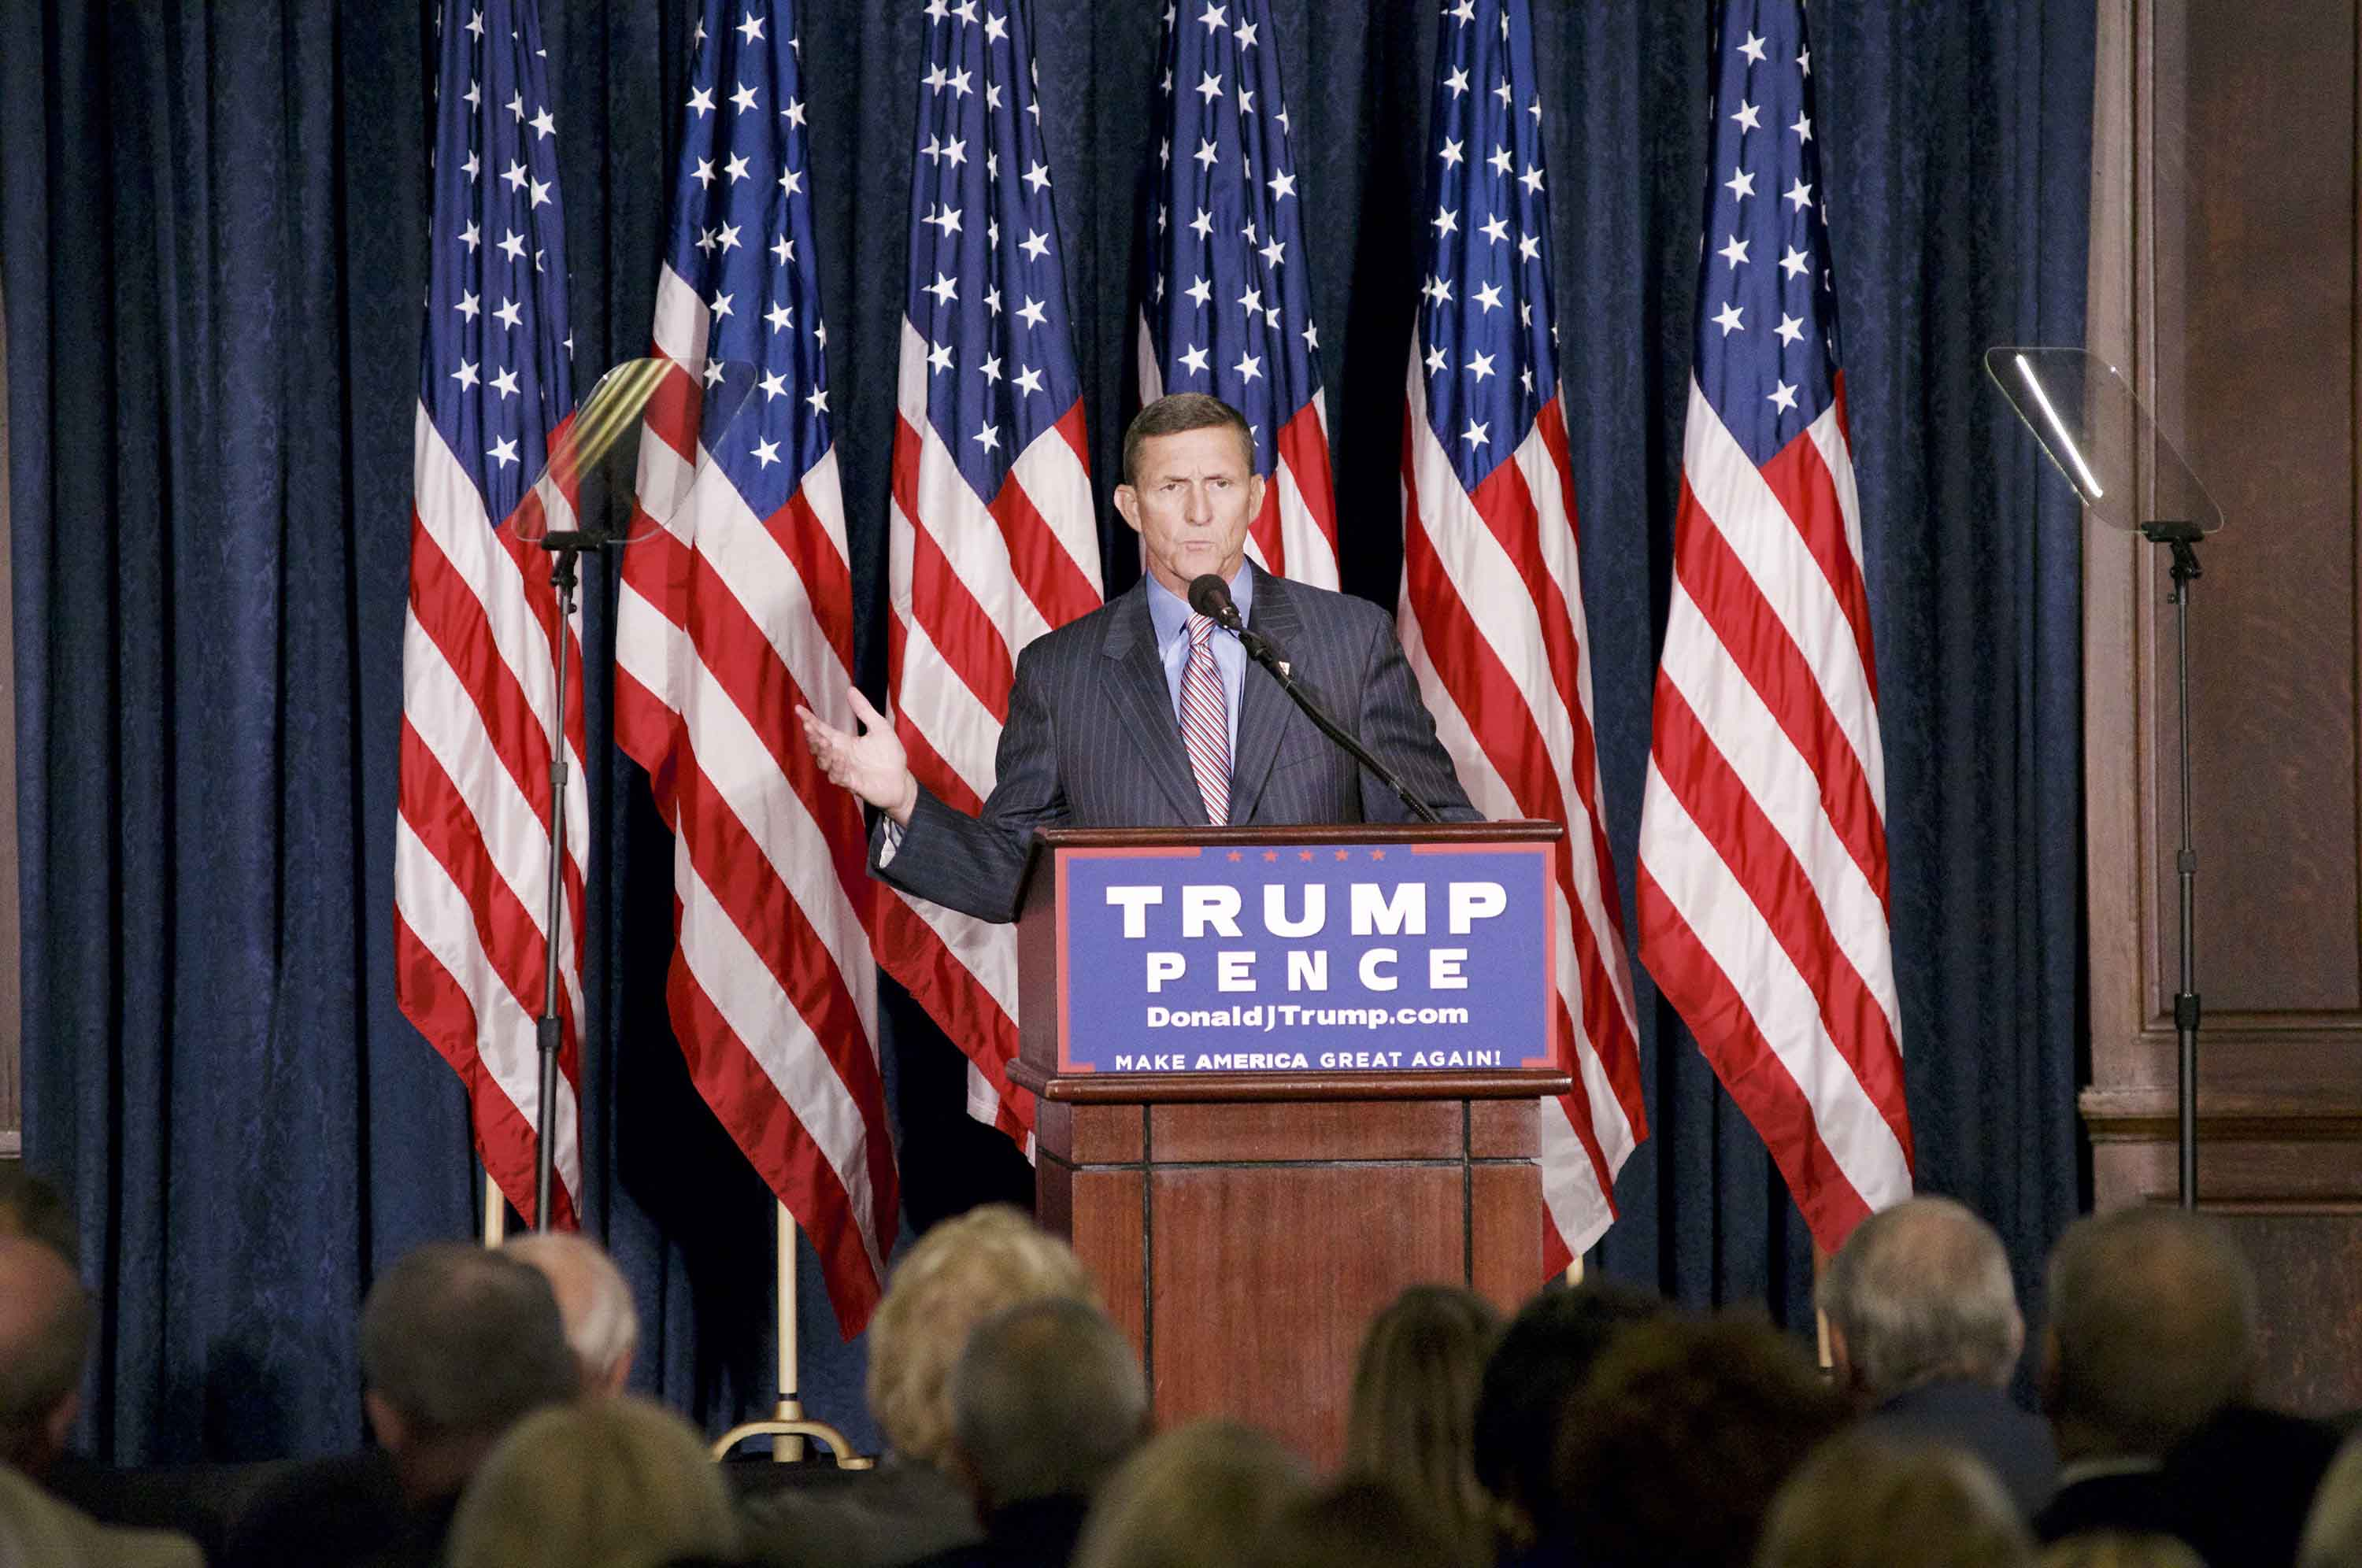 Retired Lt. Gen. Michael Flynn introduces Donald Trump at a Sept. 7, 2016 campaign event at the Union League in Philadelphia, Pa. (Bastiaan Slabbers/Zuma Press/TNS)